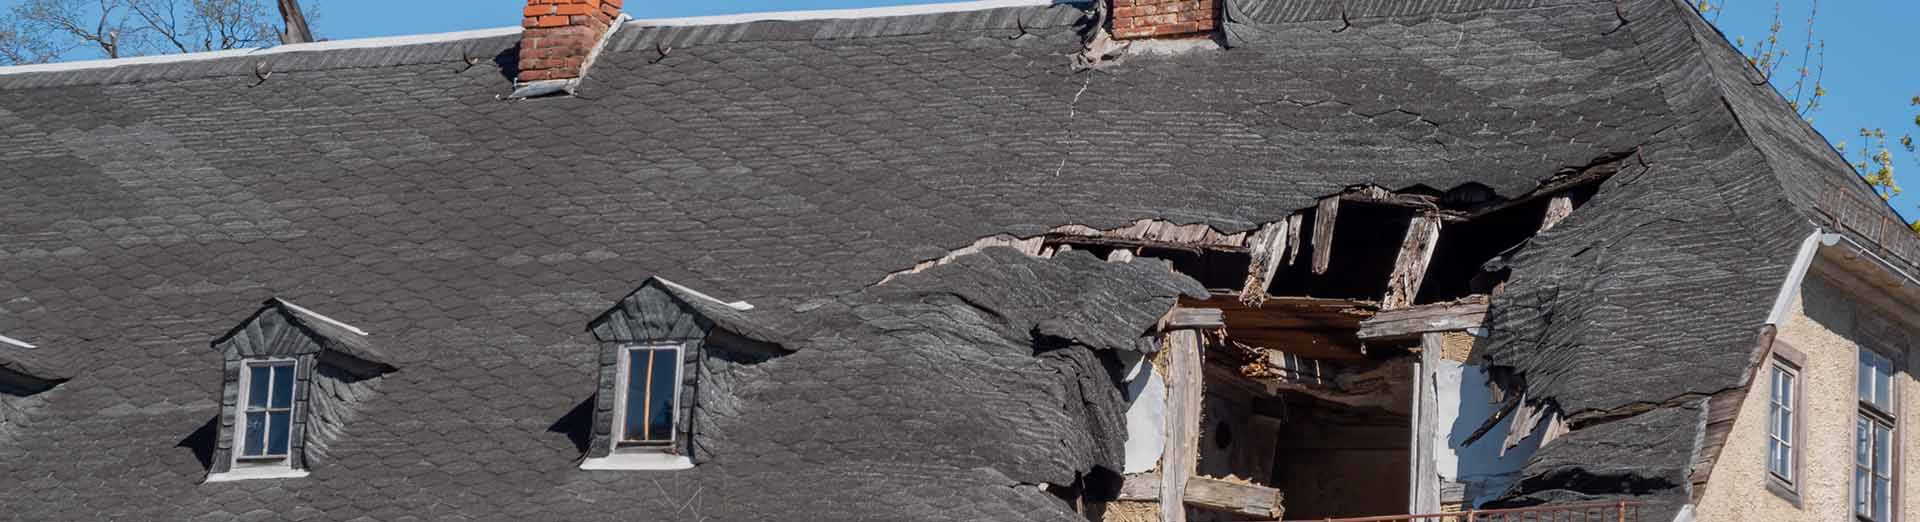 tips-for-a-sucessful-roof-leak-damage-claim-banner